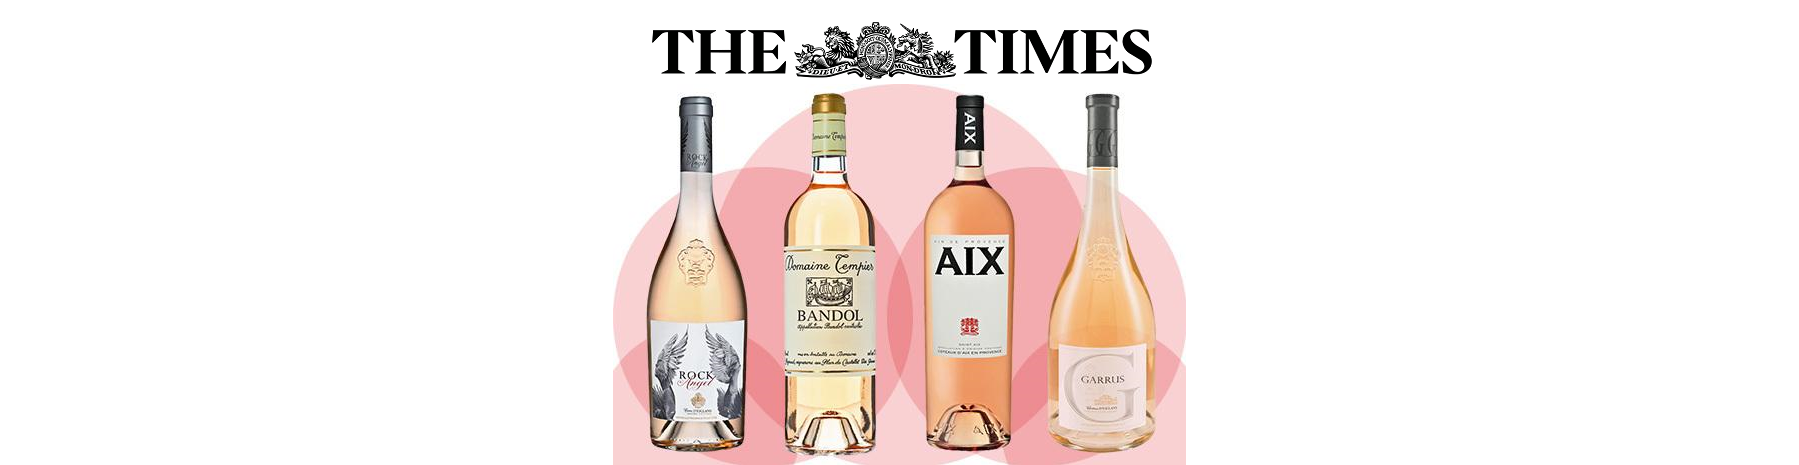 "FINE WINE, FINE WINES, THE TIMES - ""Drink Pink! The 30 Best Rosé Wines"" Jane MacQuitty"